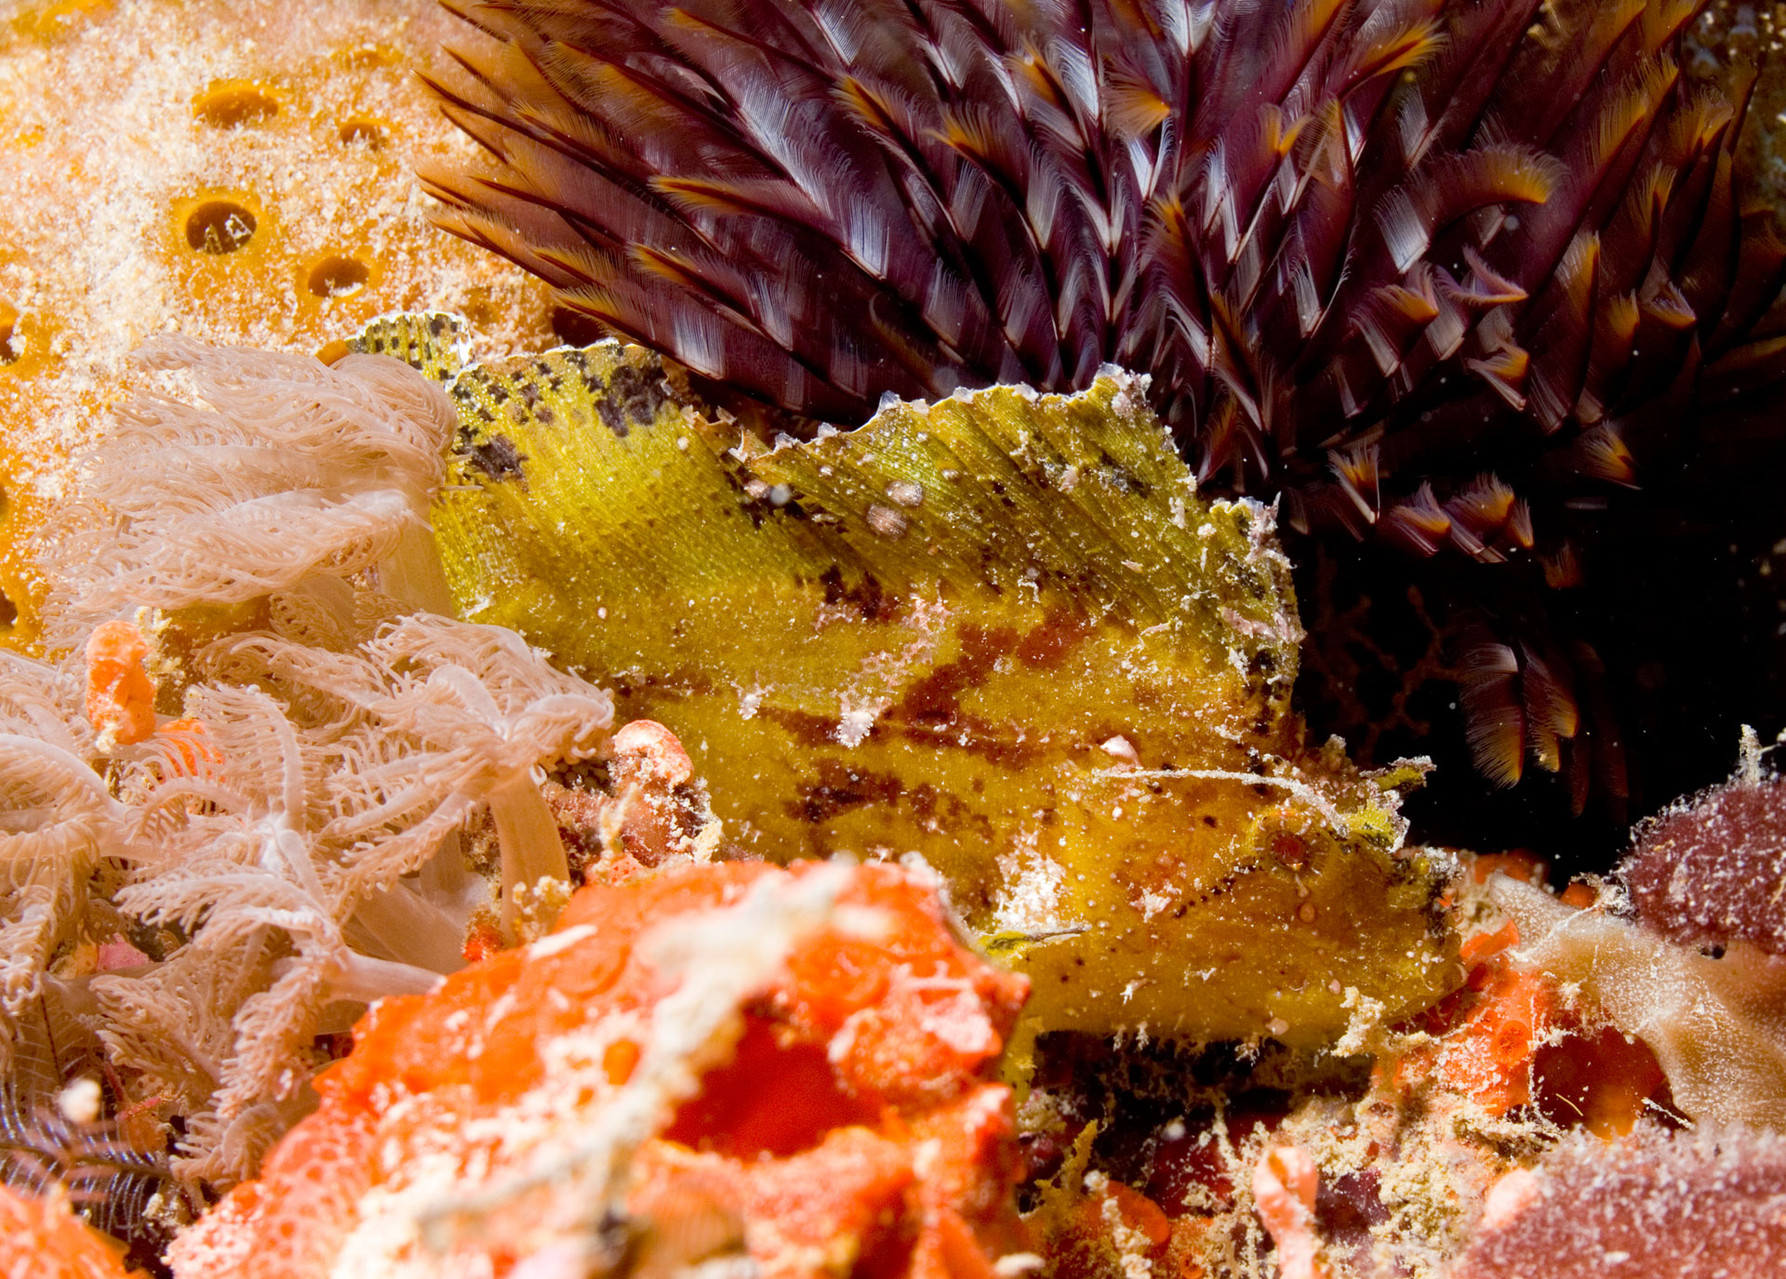 Leaf scorpionfish or paperfish (Taenianotus triacanthus)